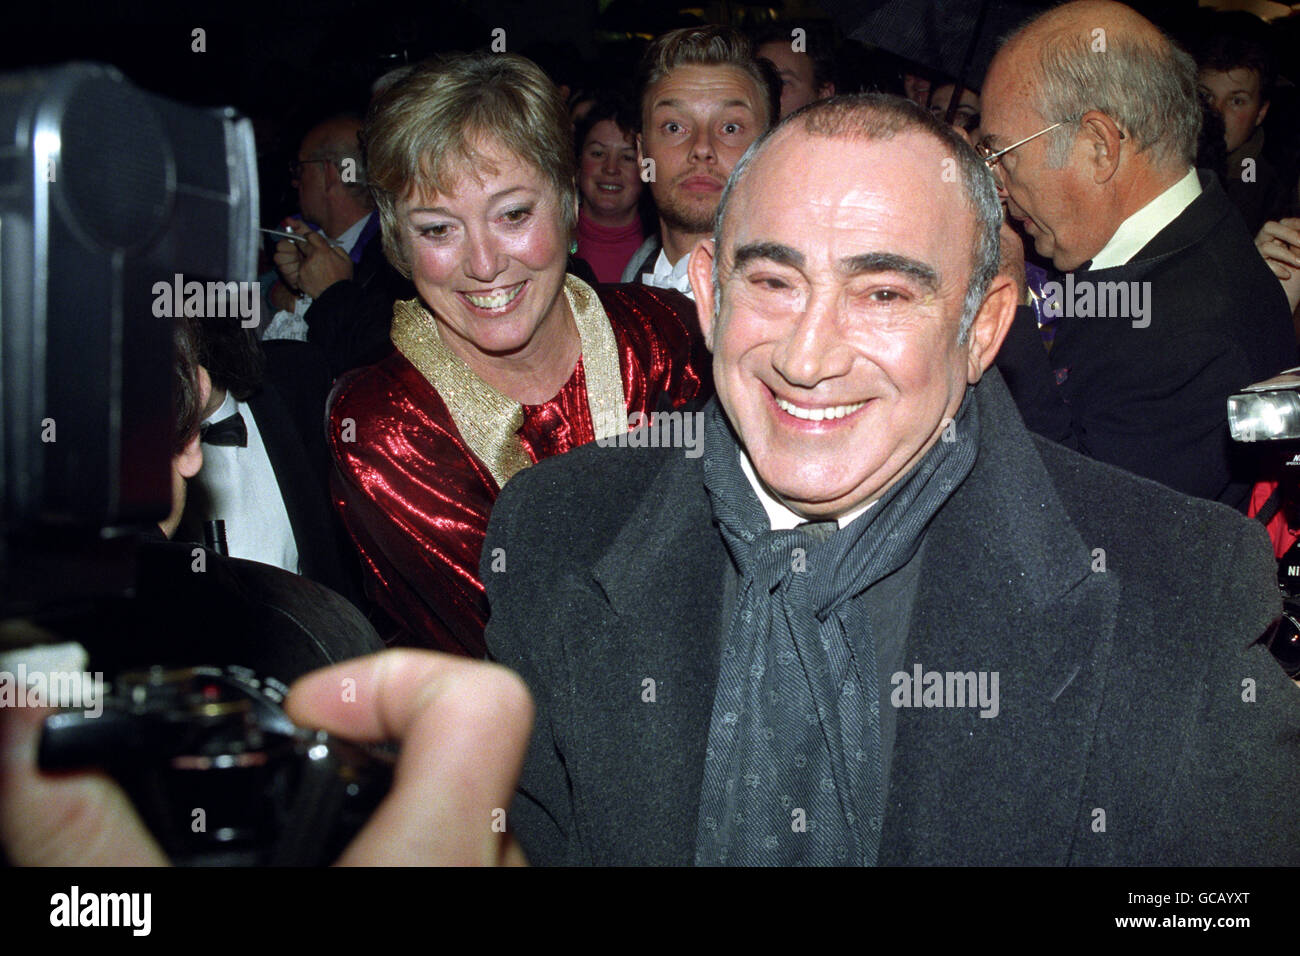 LIONEL BART ARRIVES FOR OLIER - Stock Image